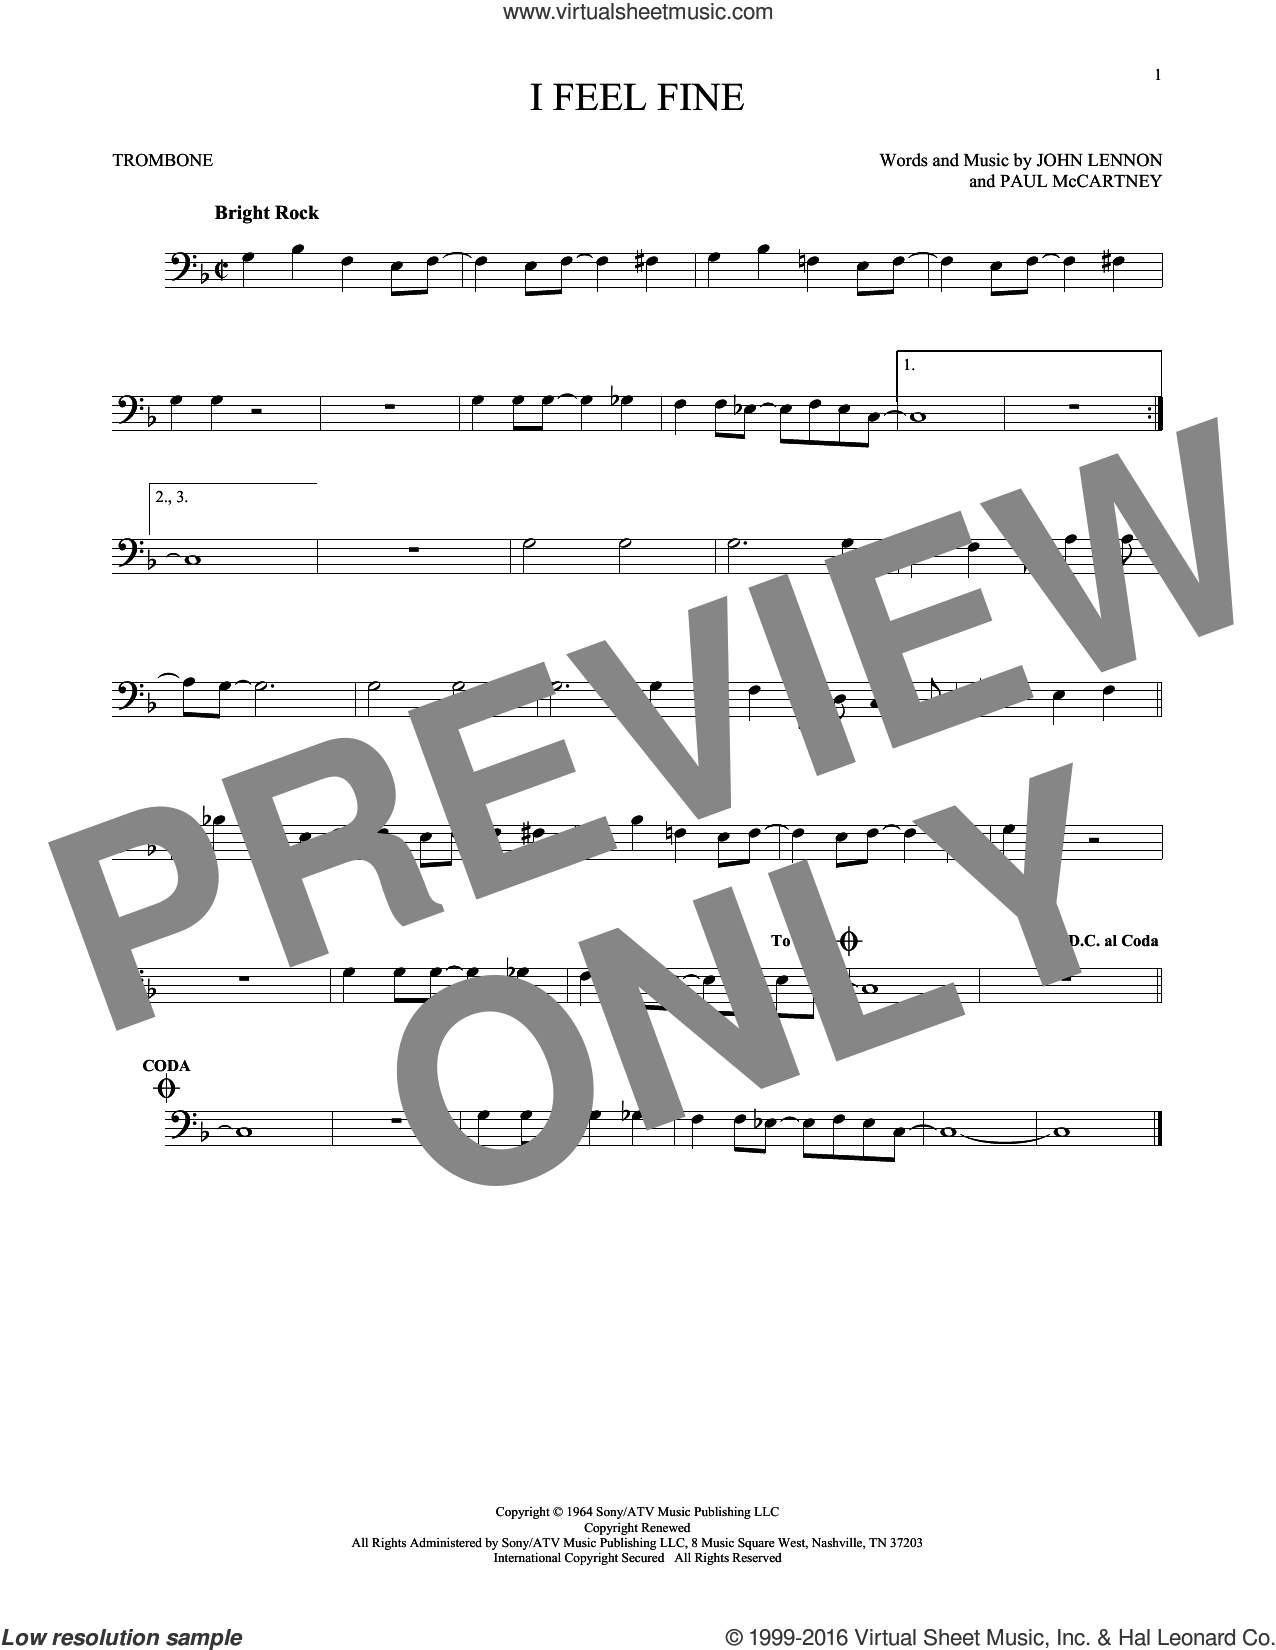 I Feel Fine sheet music for trombone solo by The Beatles, John Lennon and Paul McCartney, intermediate